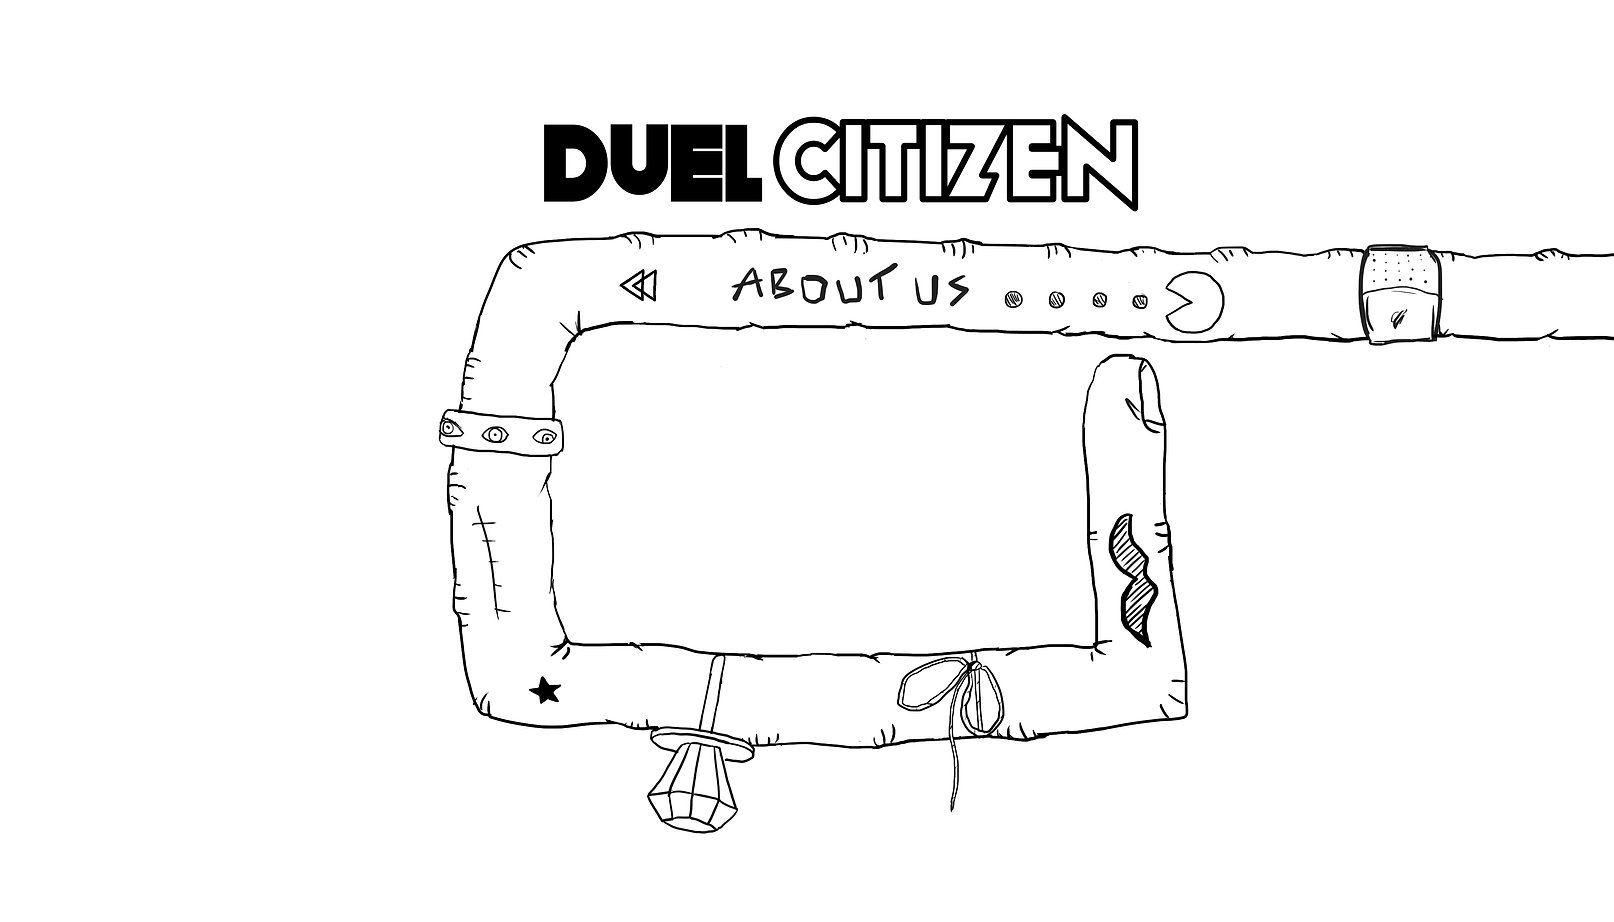 Duel Citizen